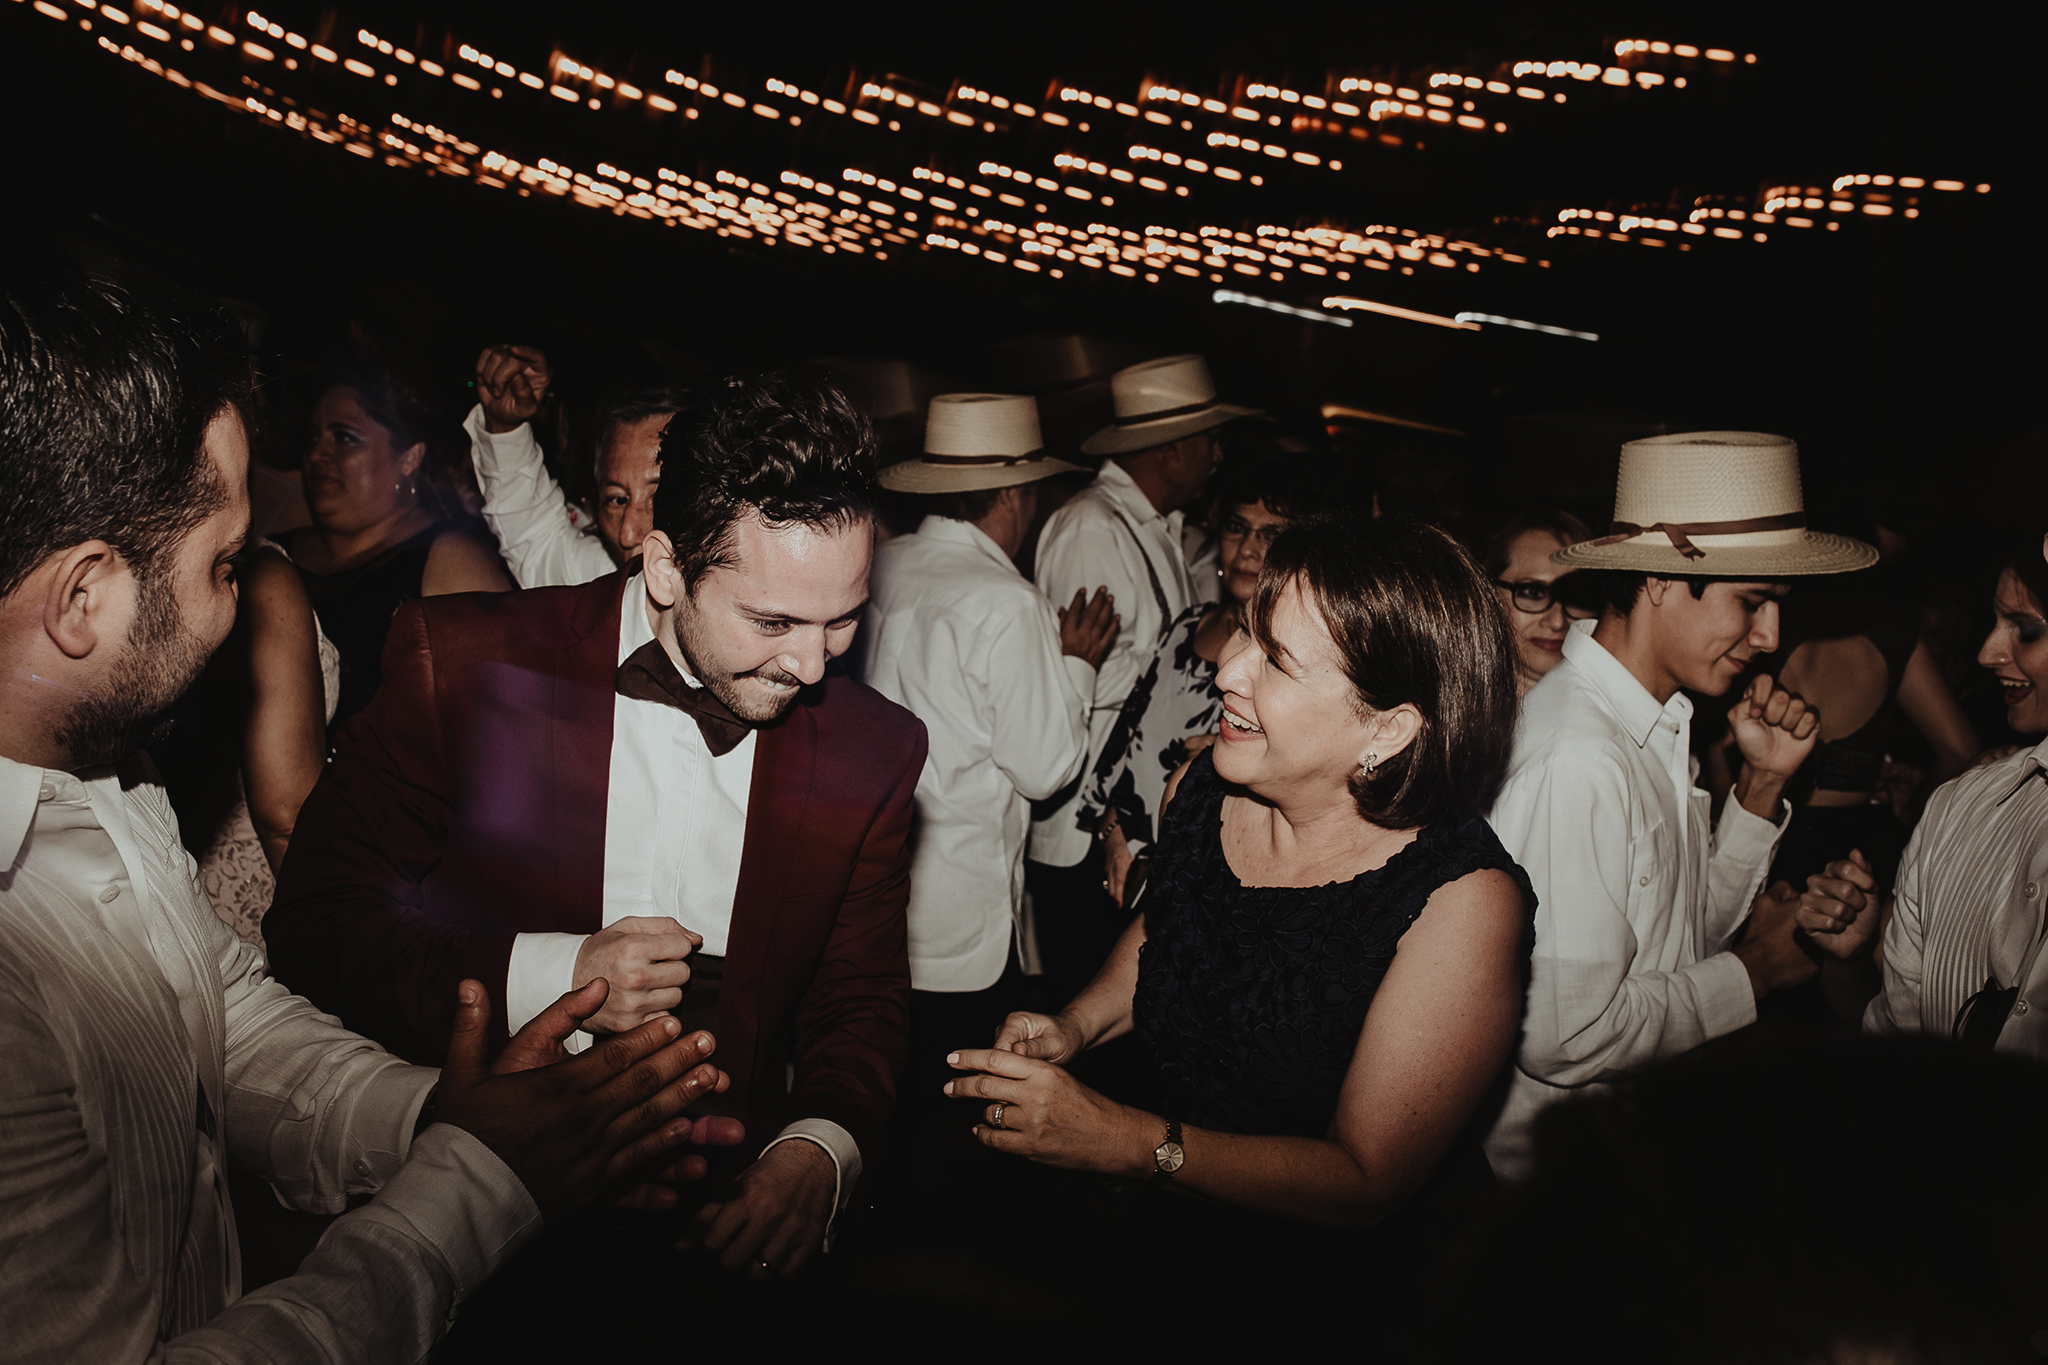 0379p&a_Hacienda__WeddingDestination_Weddingmerida_BodaMexico_FotografoDeBodas_WeddingGay.jpg